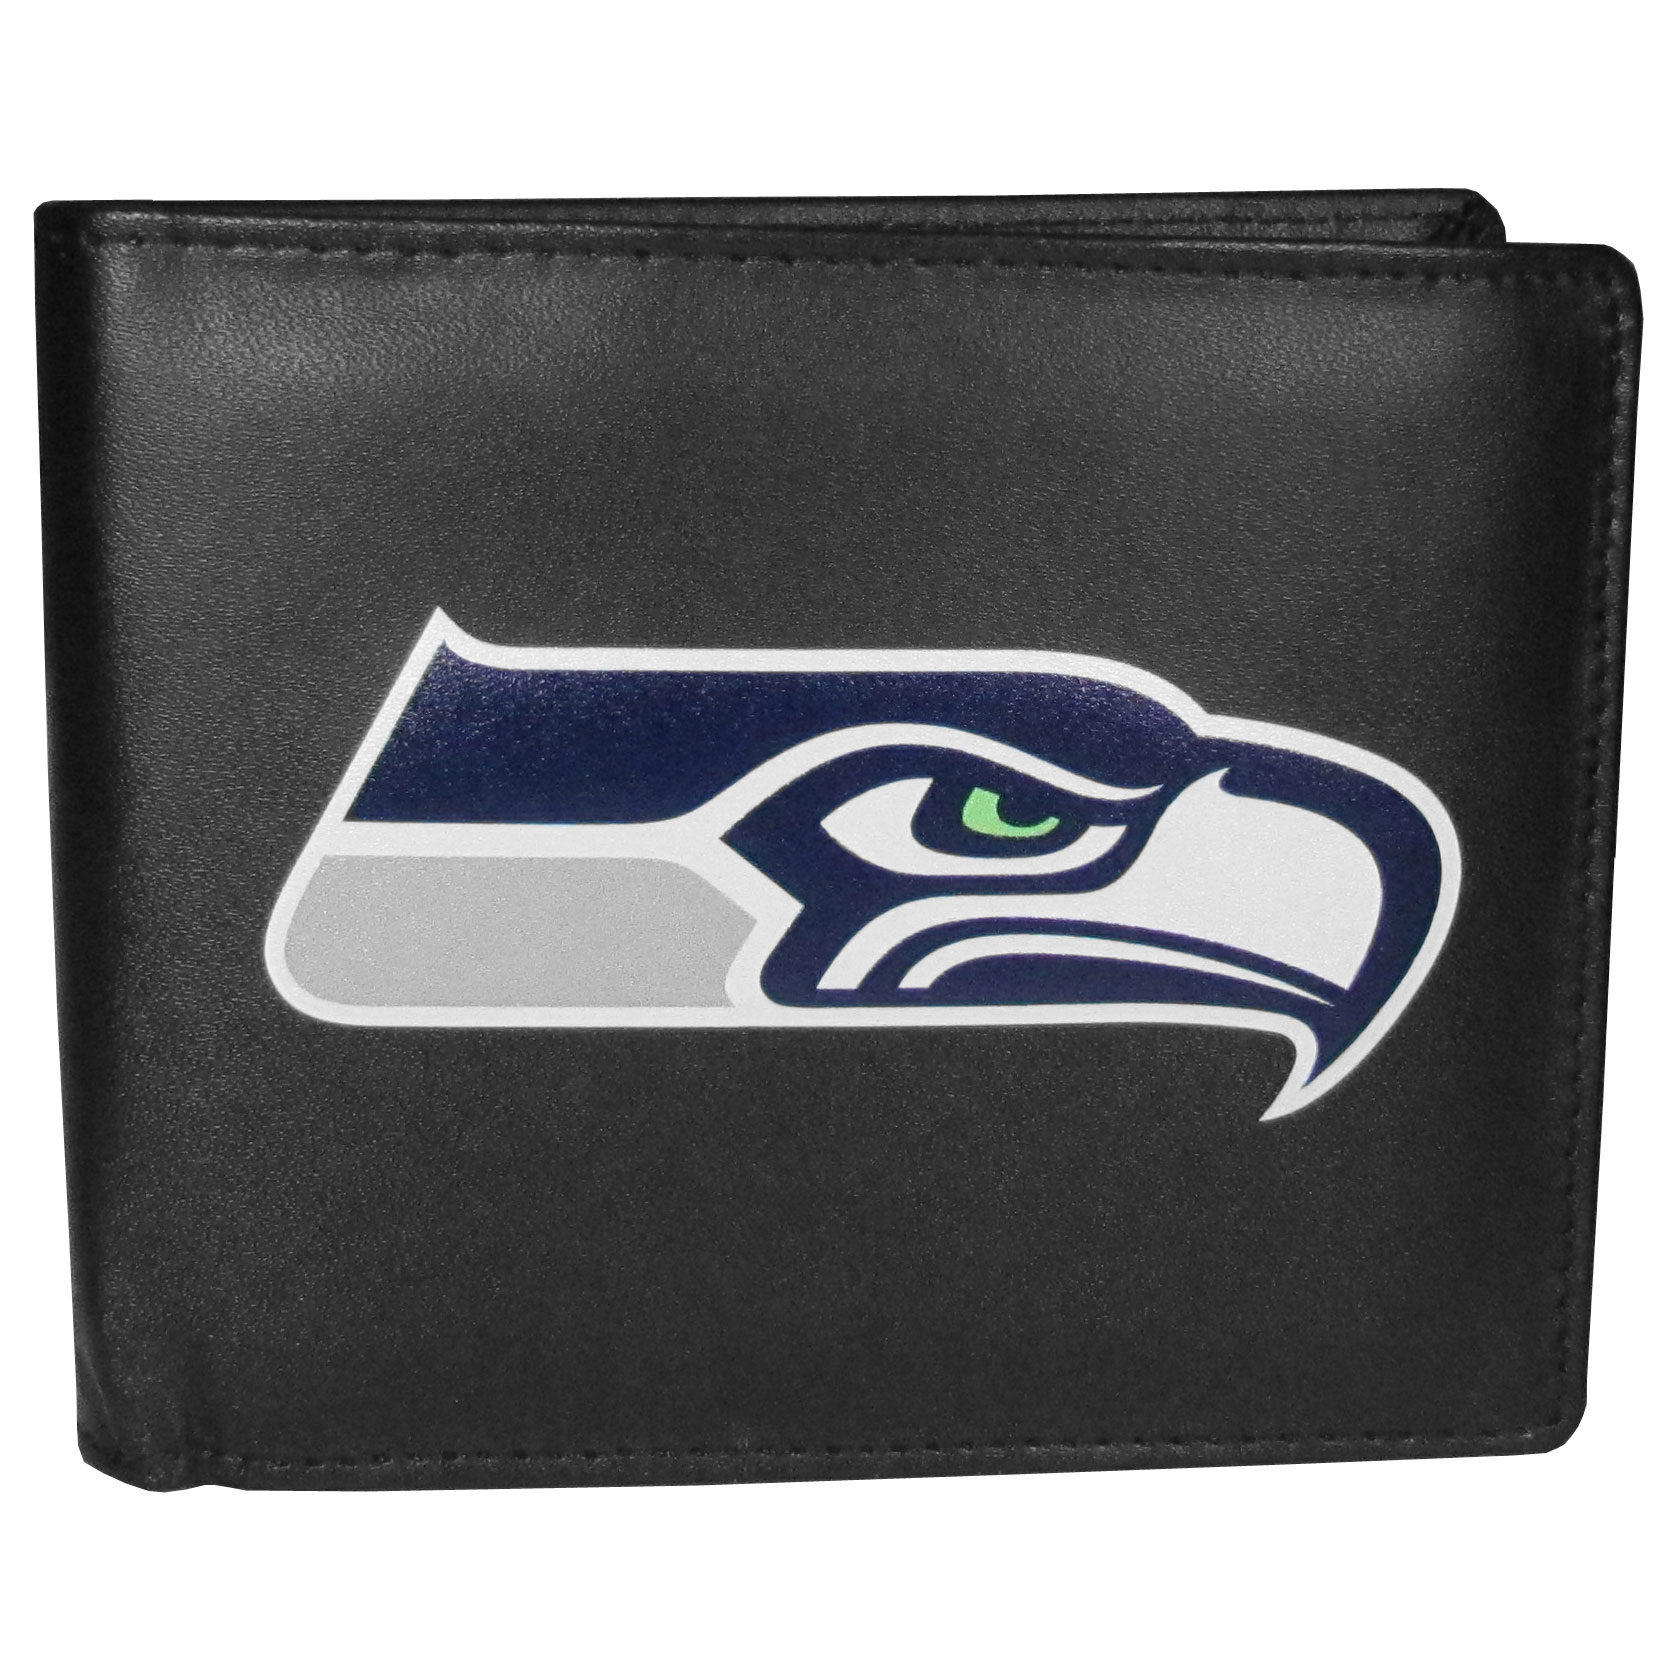 Seattle Seahawks Leather Bi-fold Wallet, Large Logo - Our classic fine leather bi-fold wallet is meticulously crafted with genuine leather that will age beautifully so you will have a quality wallet for years to come. The wallet opens to a large, billfold pocket and numerous credit card slots and has a convenient windowed ID slot. The front of the wallet features an extra large Seattle Seahawks printed logo.